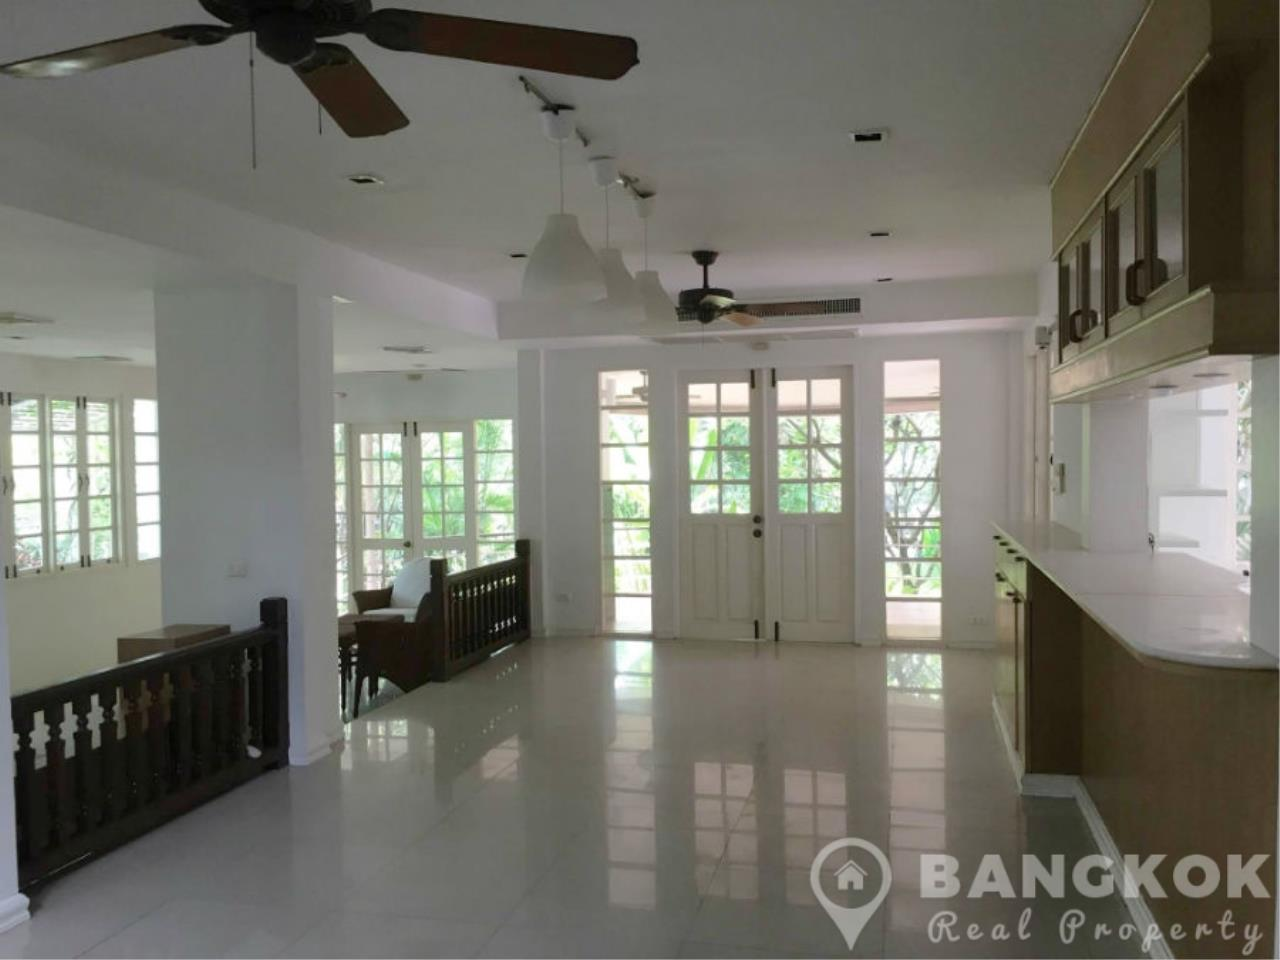 Bangkok Real Property Agency's Spacious, Detached 4 Bed 4 Bath House near Bangkok Patana School  1